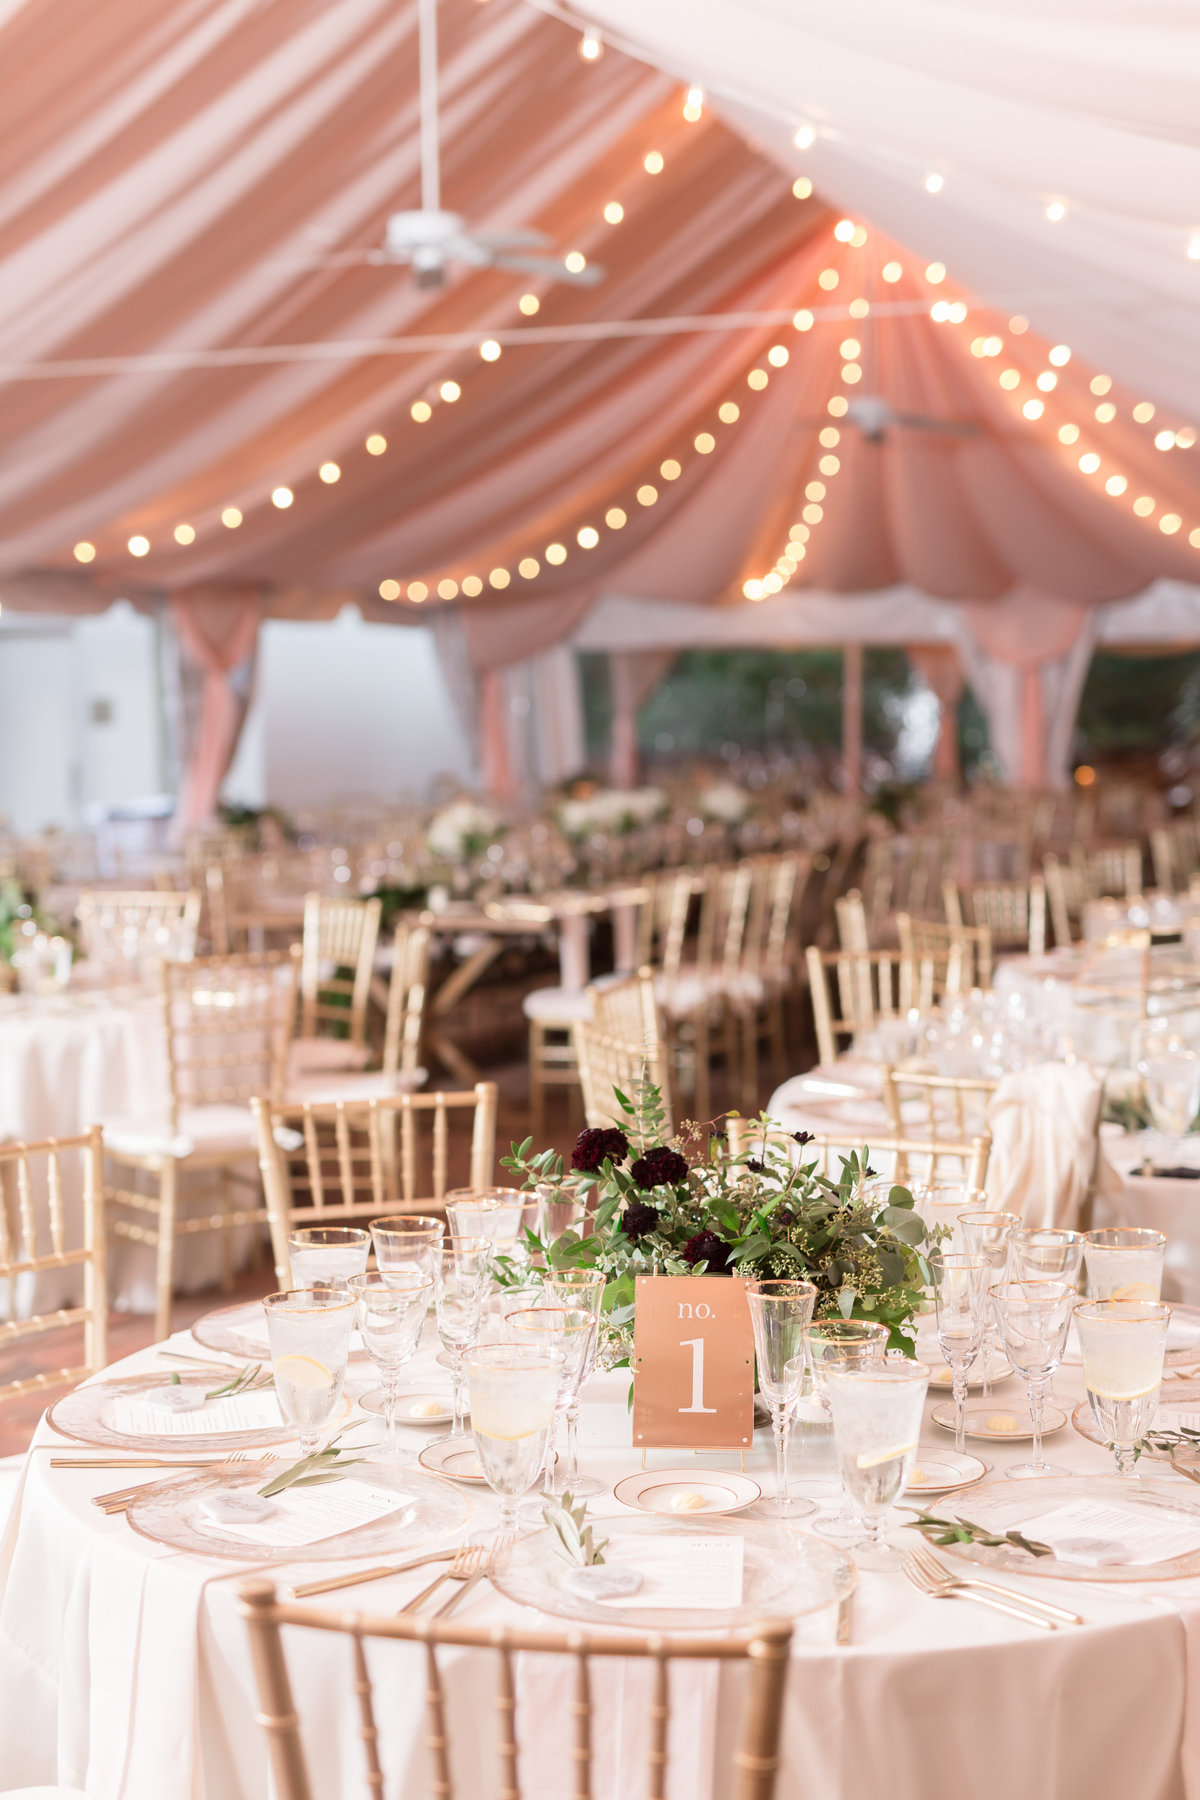 Maura Bassman - Wedding Event and Design - Cincinnati Wedding Planner - Photo - 12